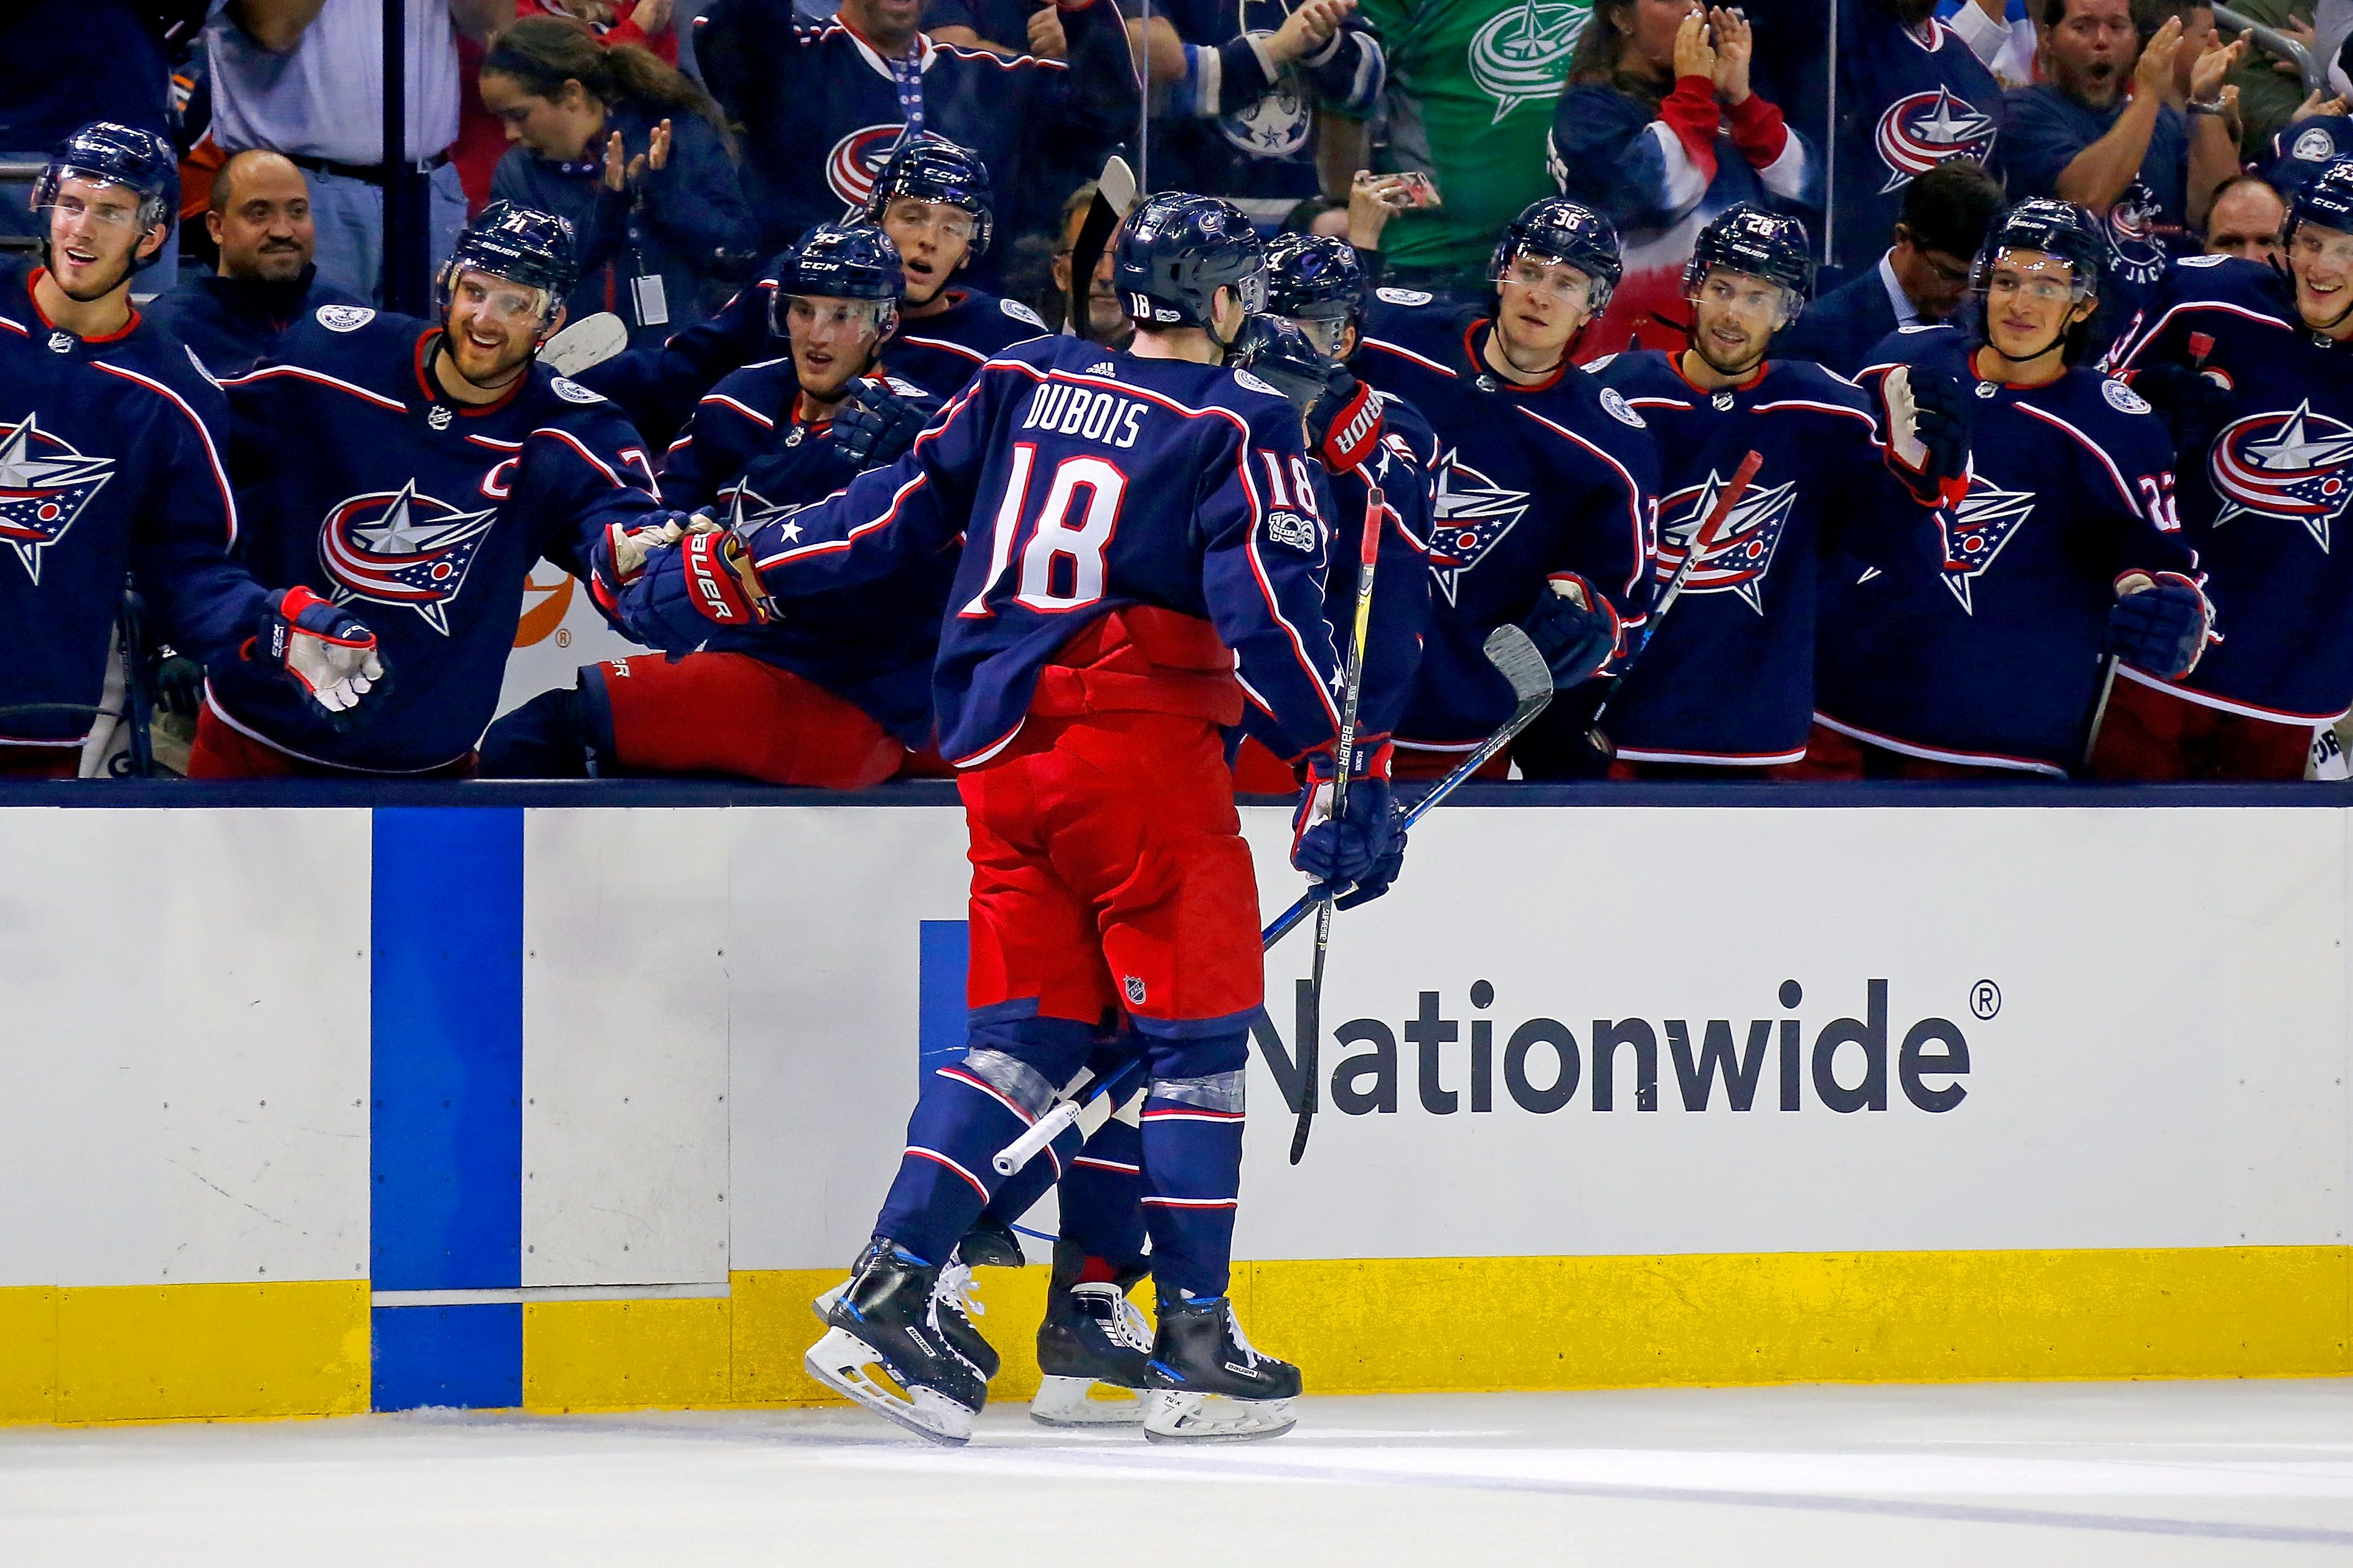 Columbus Blue Jackets vs. New York Rangers Primer and Prediction